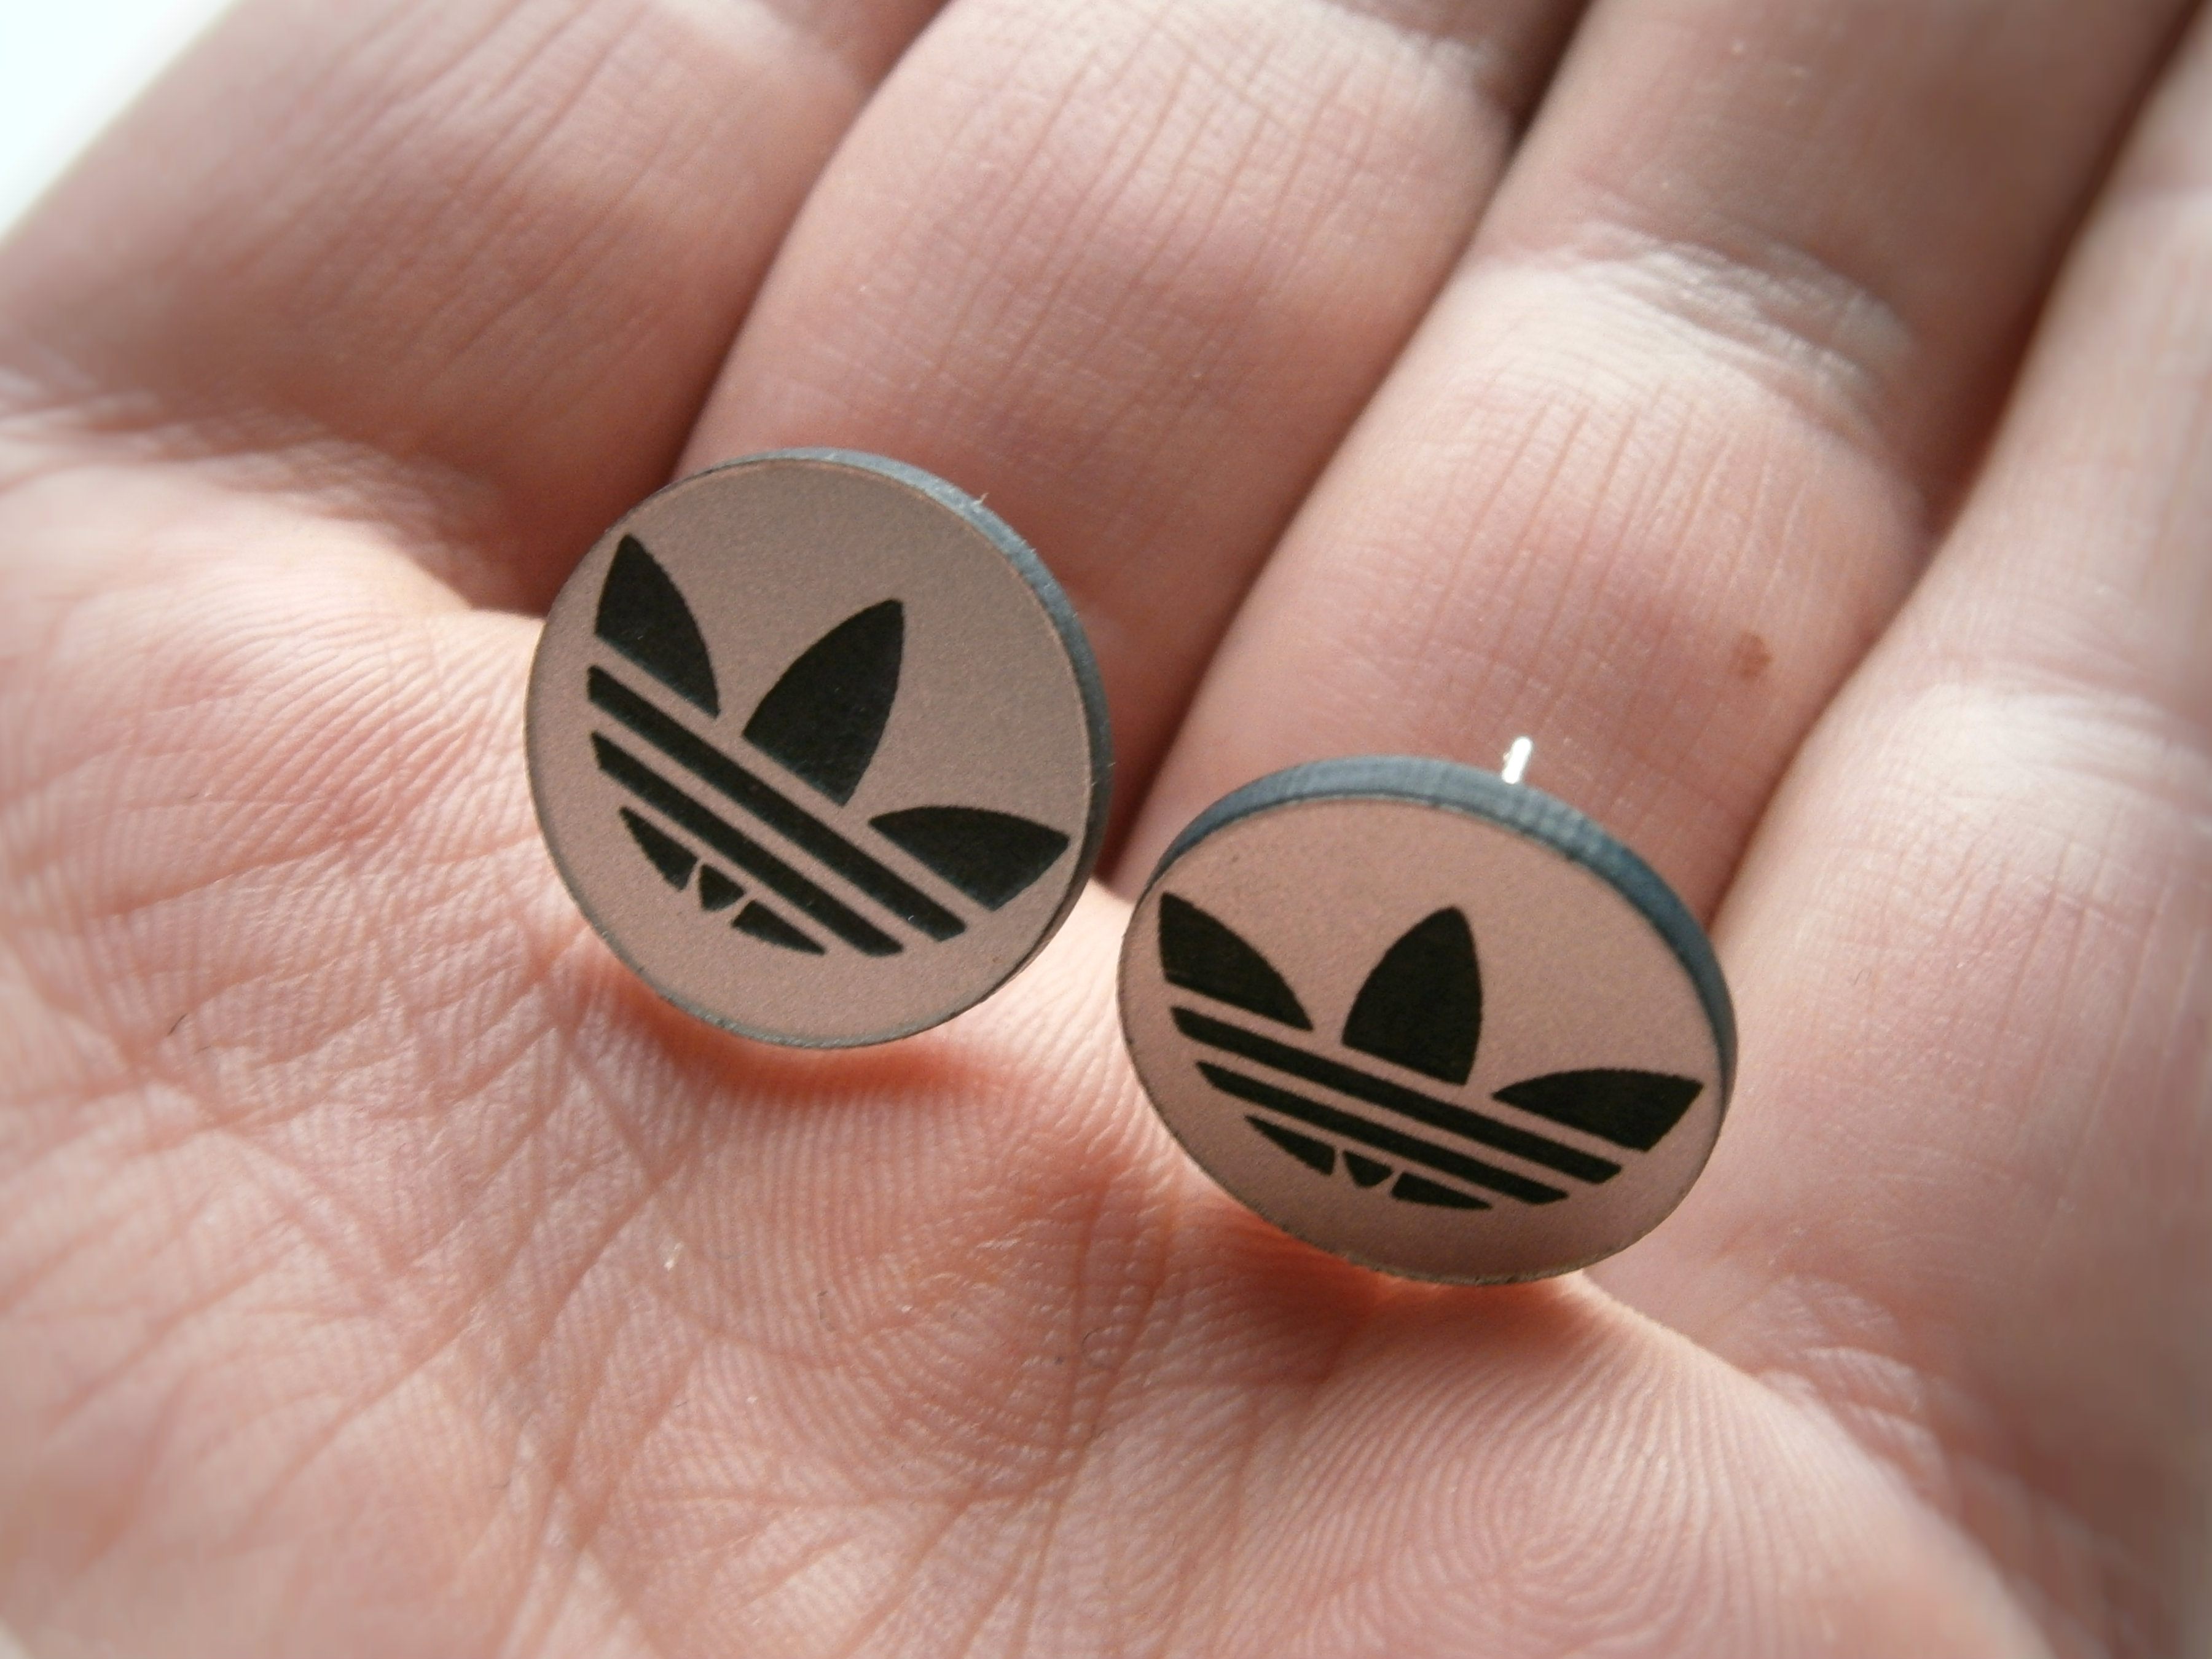 Adidas Stud Earrings Silver Background Engraved Black Adidas